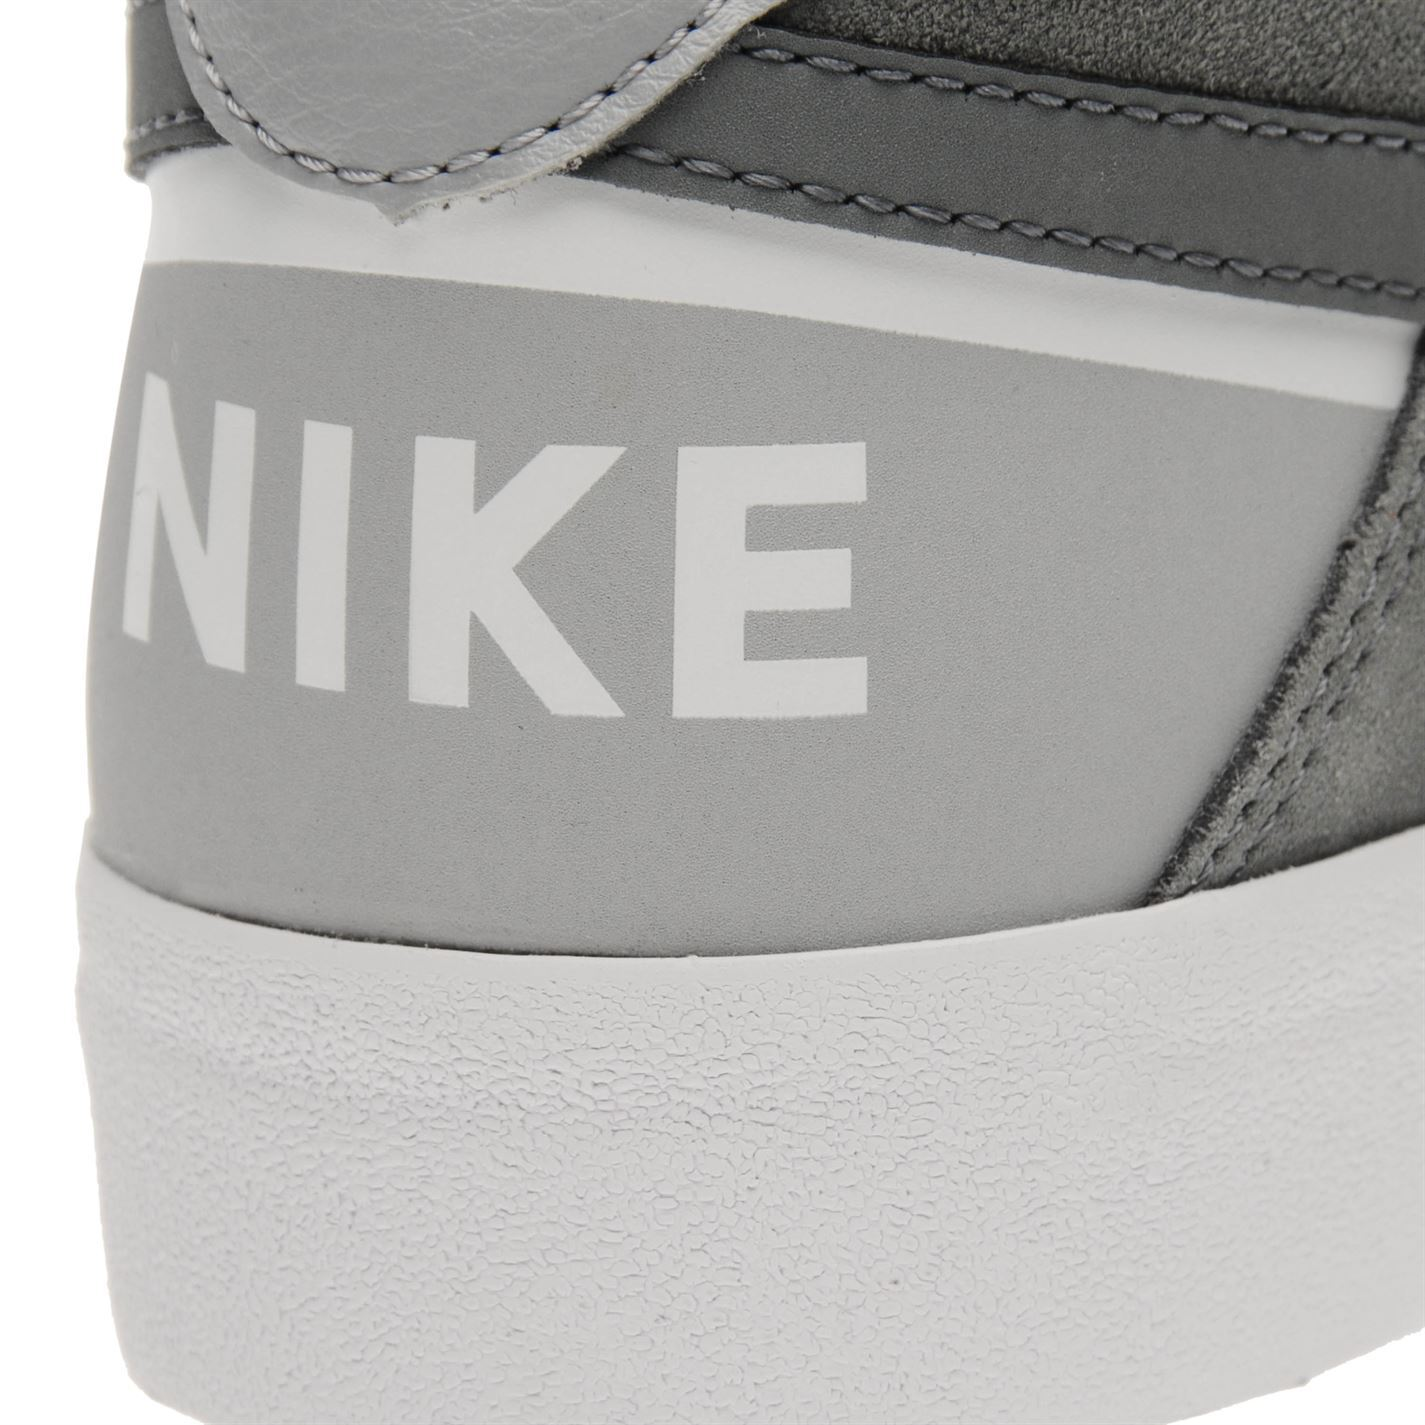 9a630bfbc2540 Nike SB Delta Force Skate Shoes Mens Grey Skateboarding Trainers Sneakers